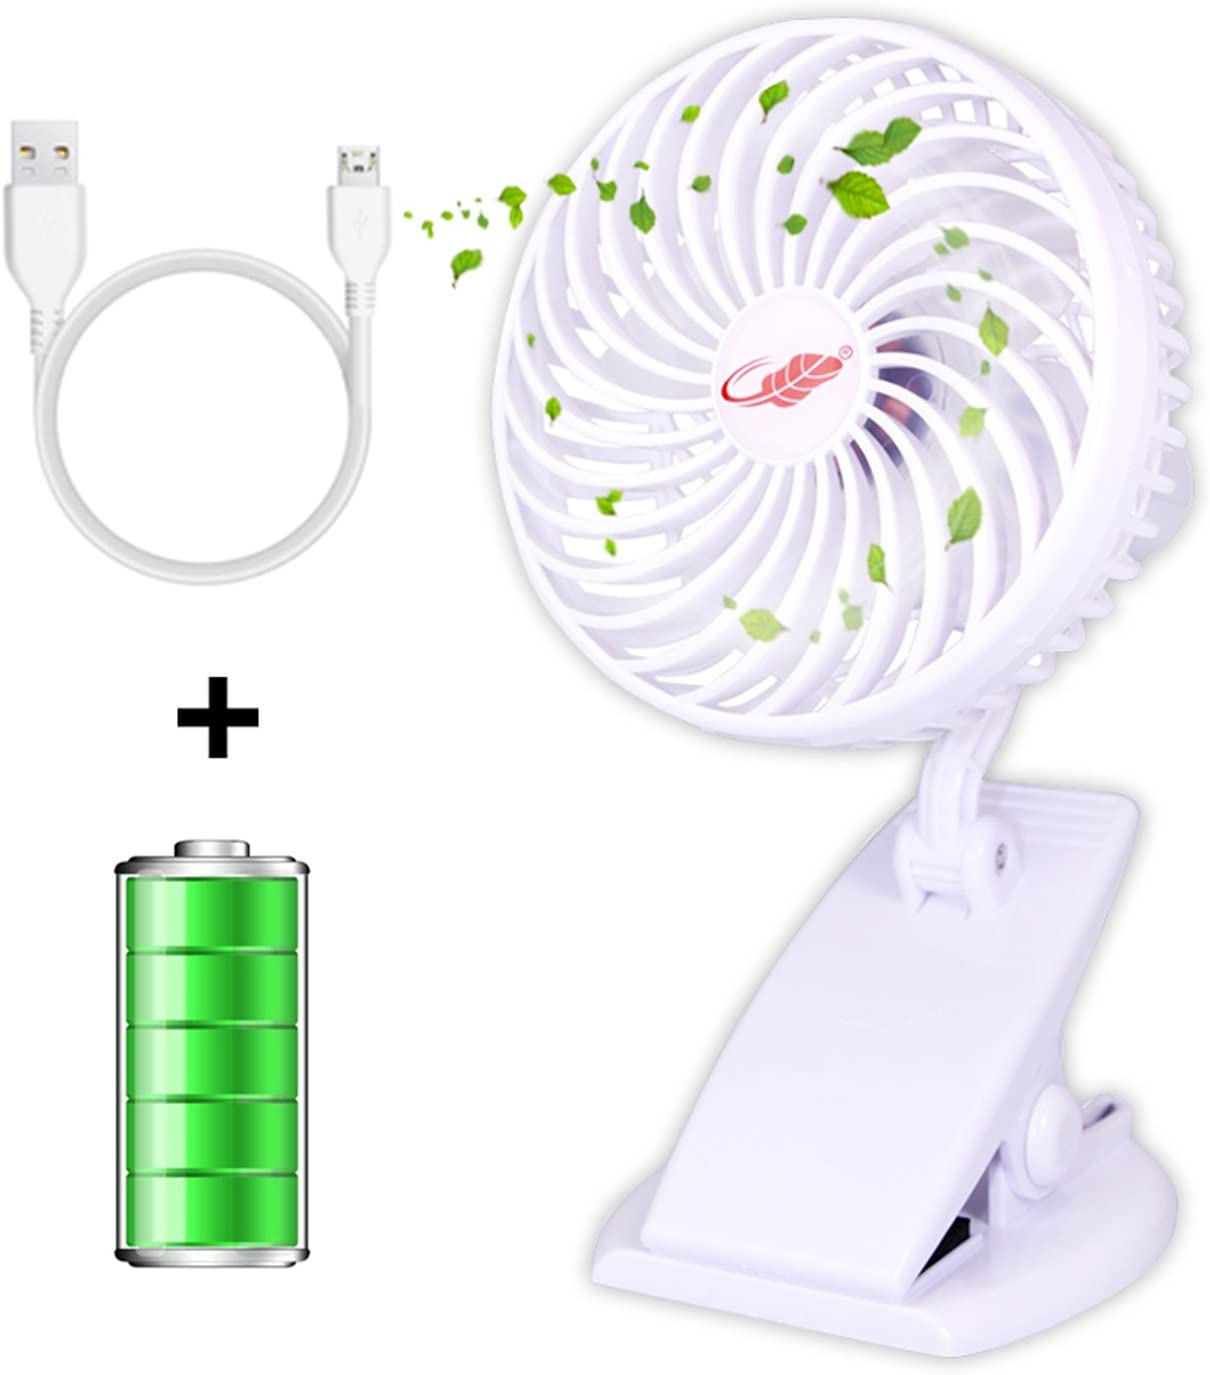 RASSE Clip on Fan Desk Fan USB Portable Fan, Mini Fan Portable Cooling Desk Fan Removalbe Handheld Fan Included Rechargeable 2200mAh 18650 Battery with Strong Wind Adjustable Speeds